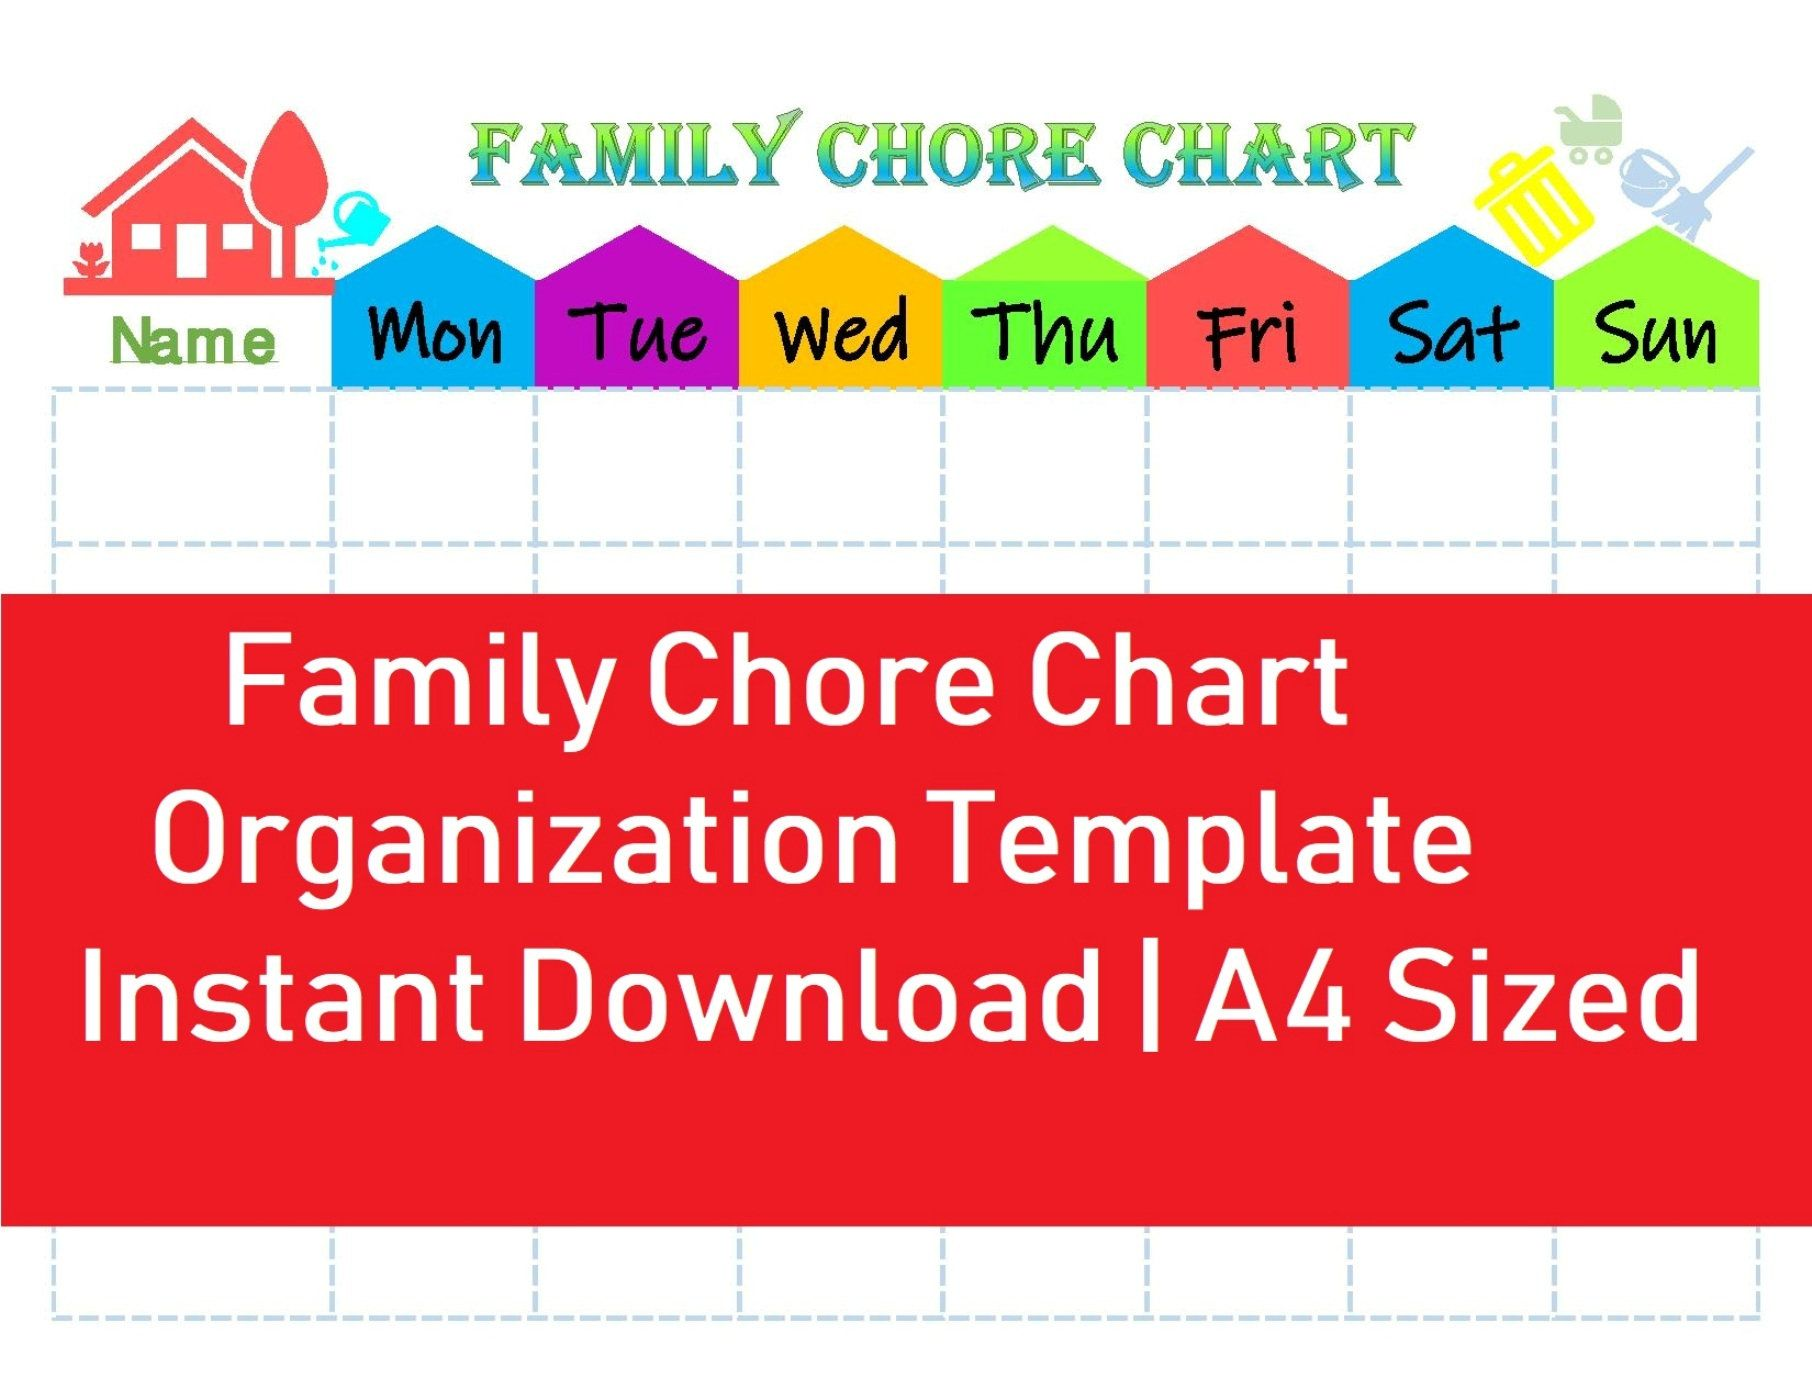 Family Chore Chart Home Organization Template Printable